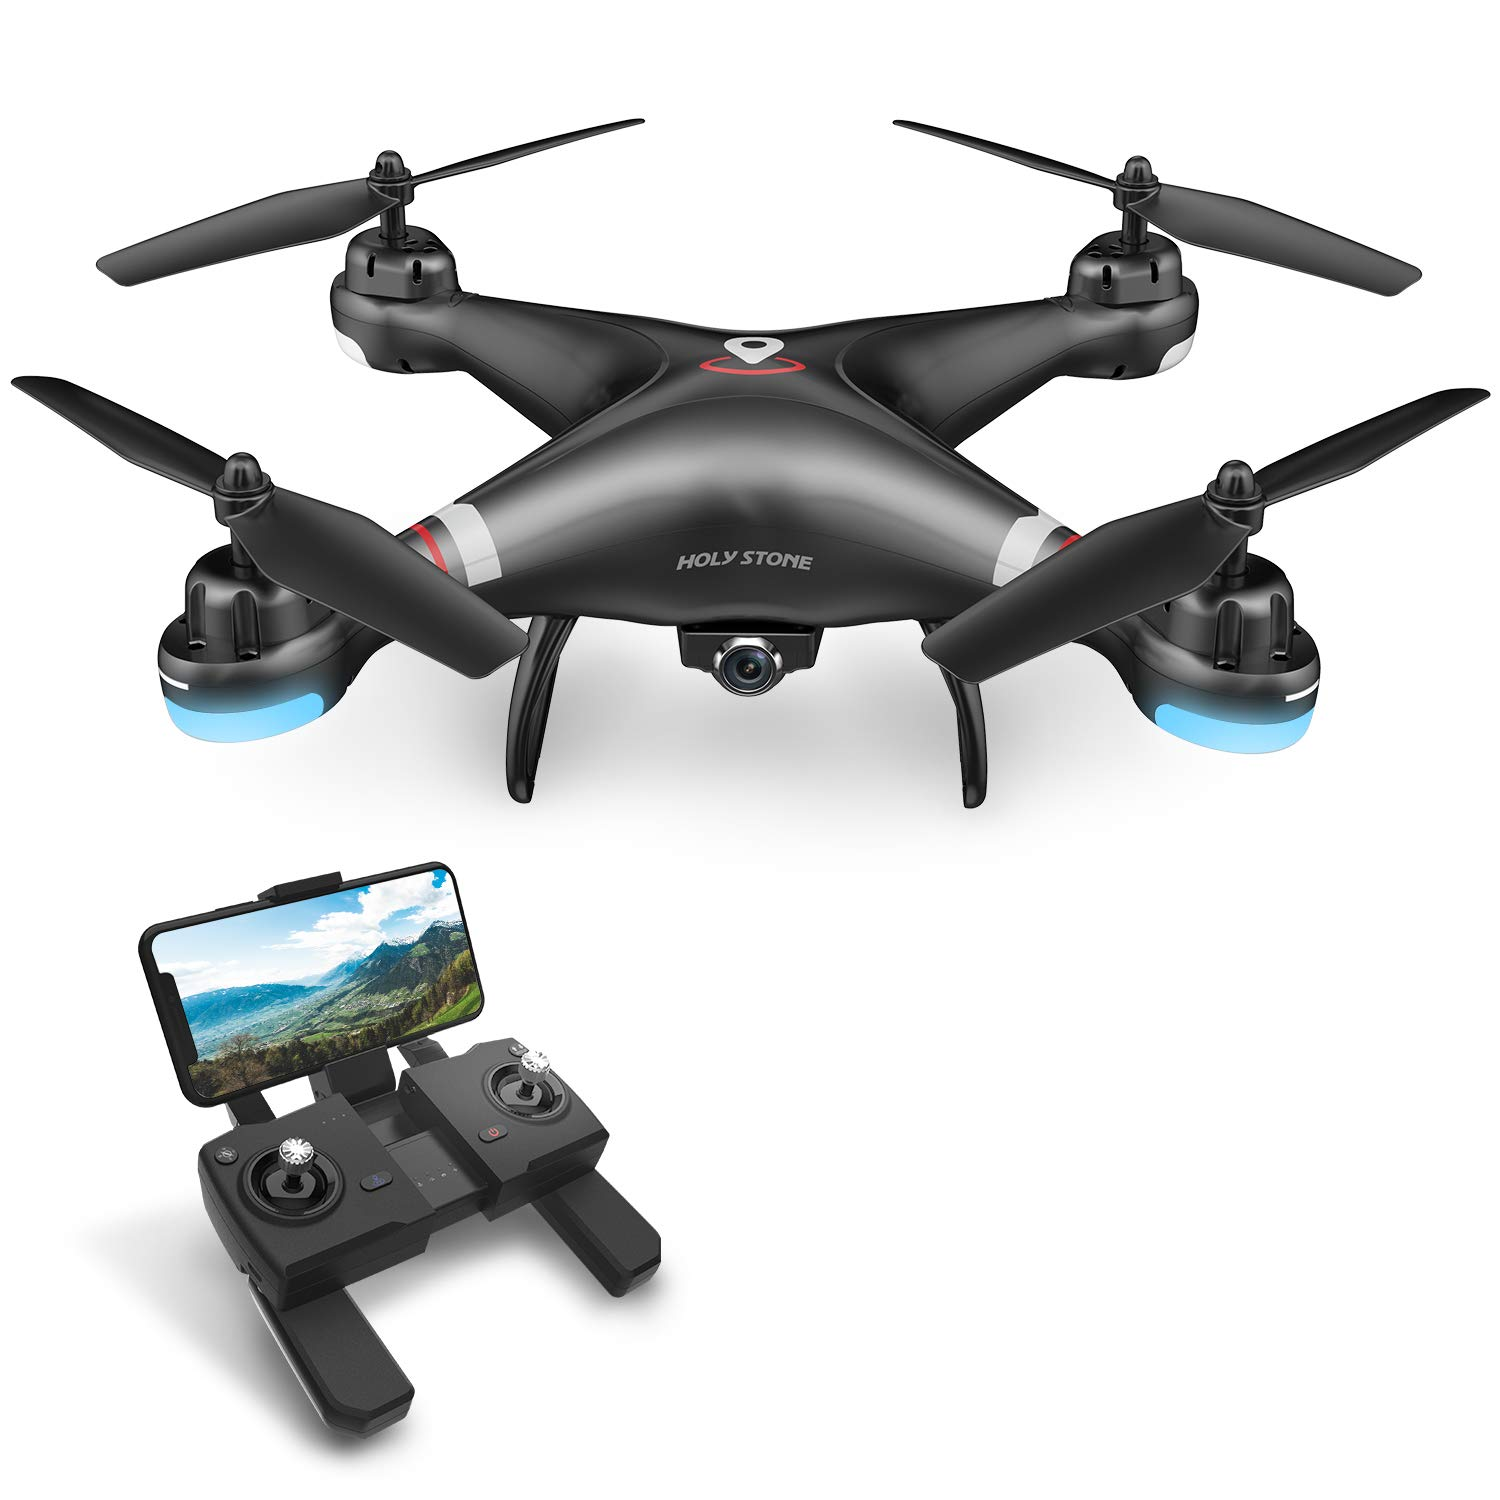 Holy Stone HS110G GPS FPV Drone with 1080P HD Live Video Camera for Adults and Kids, RC Quadcopter with GPS Auto Return Home, Auto Hover and Follow Me Mode, Long Flight Time, Easy to Fly for Beginners by Holy Stone